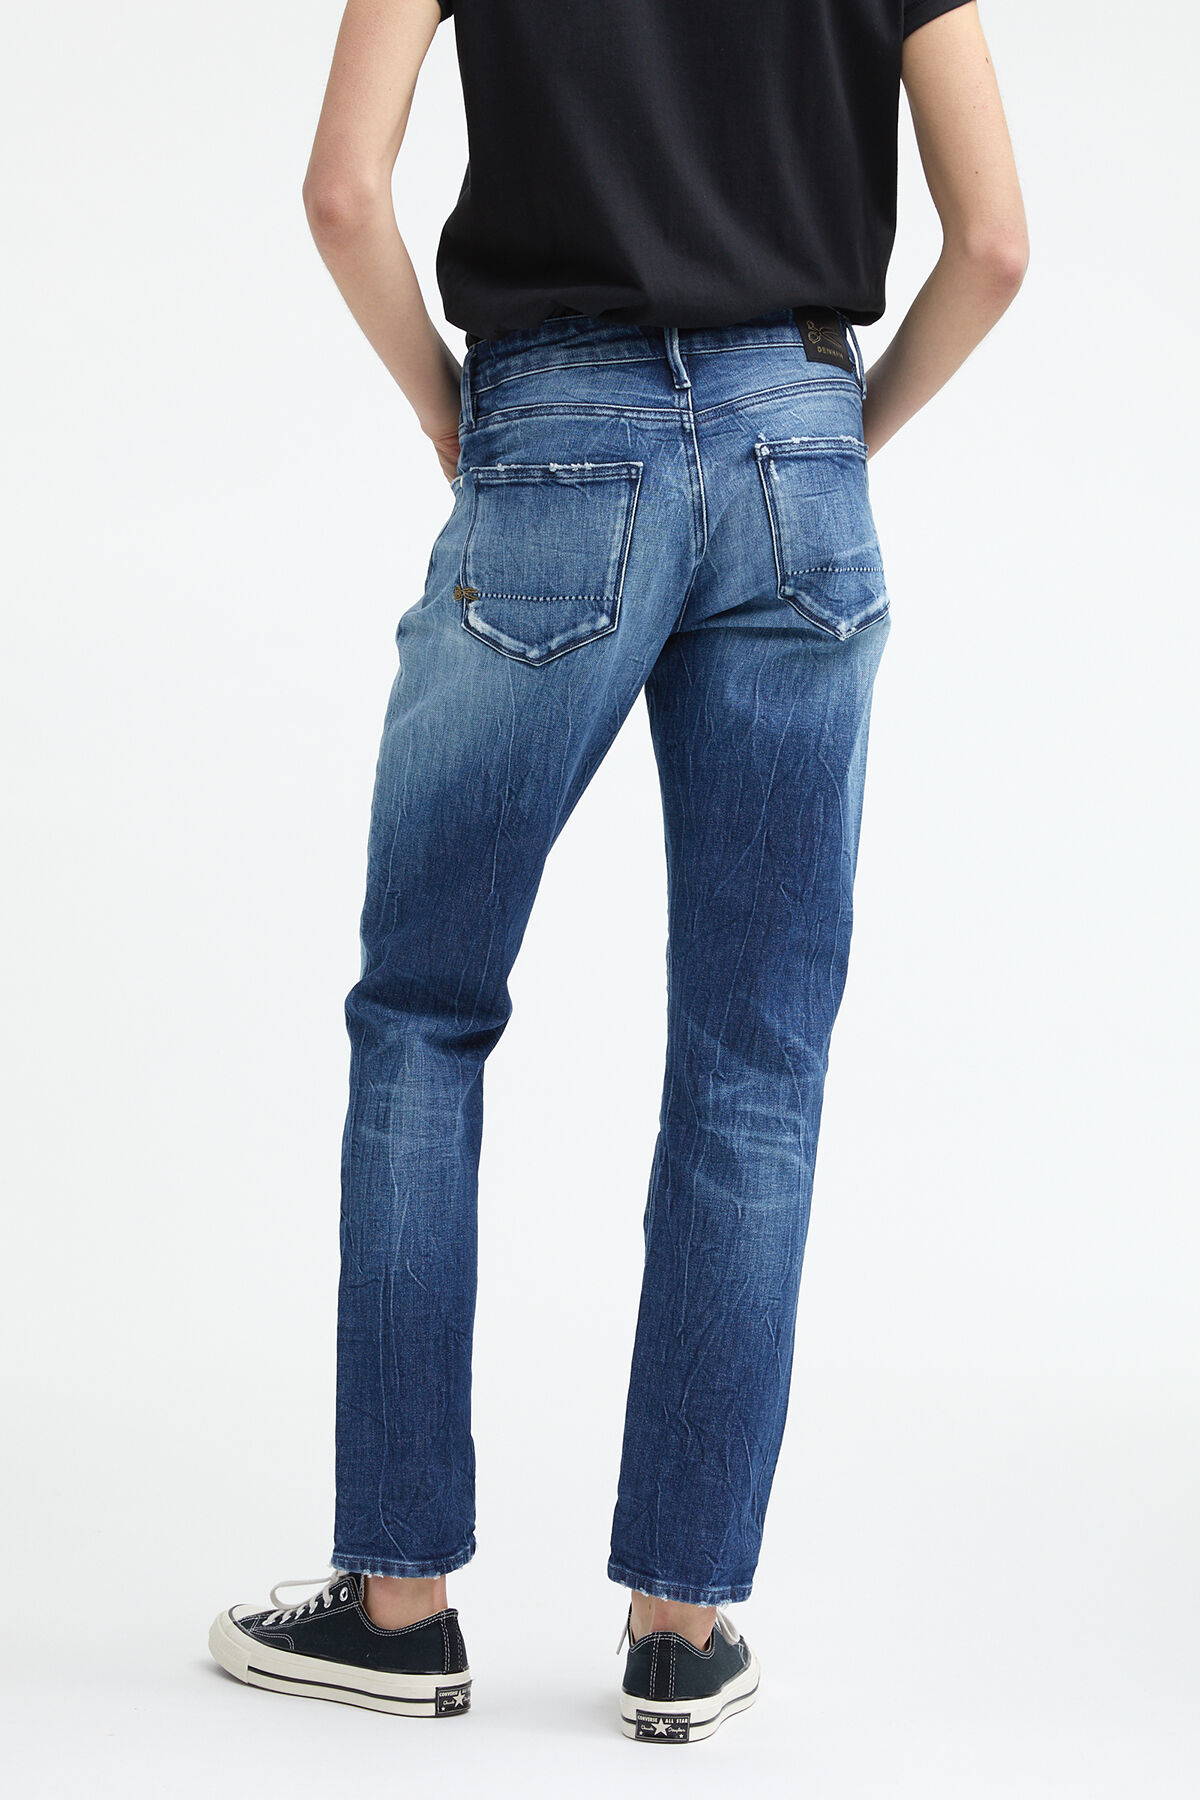 MONROE Indigo sustainable denim - Girlfriend Fit